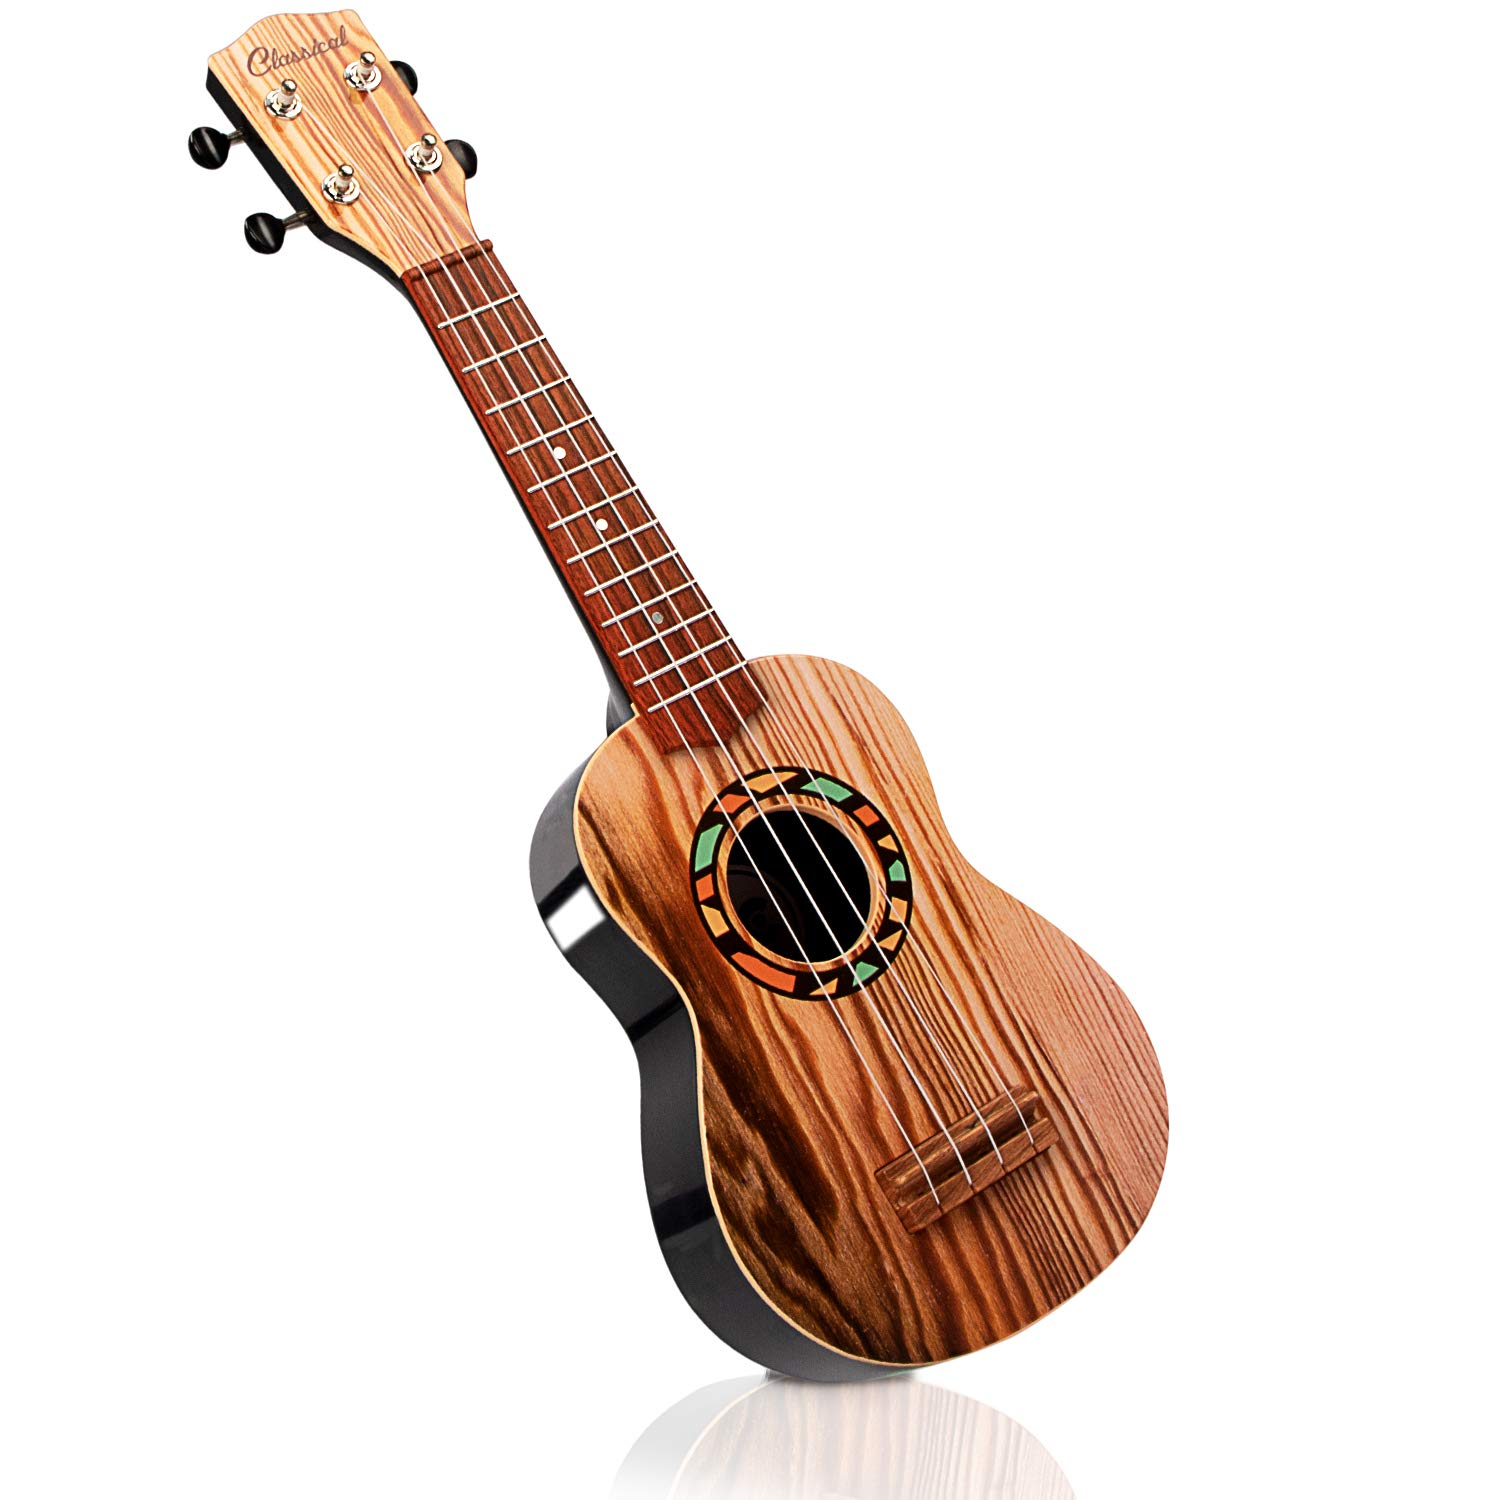 SAOCOOL Child Guitar, 21 inch Kids Ukulele Guitar Kid's Guitar Toy, 4 String Toy Guitar The Best Childrens Guitar Gift for Girls and Boys (Wood Color)